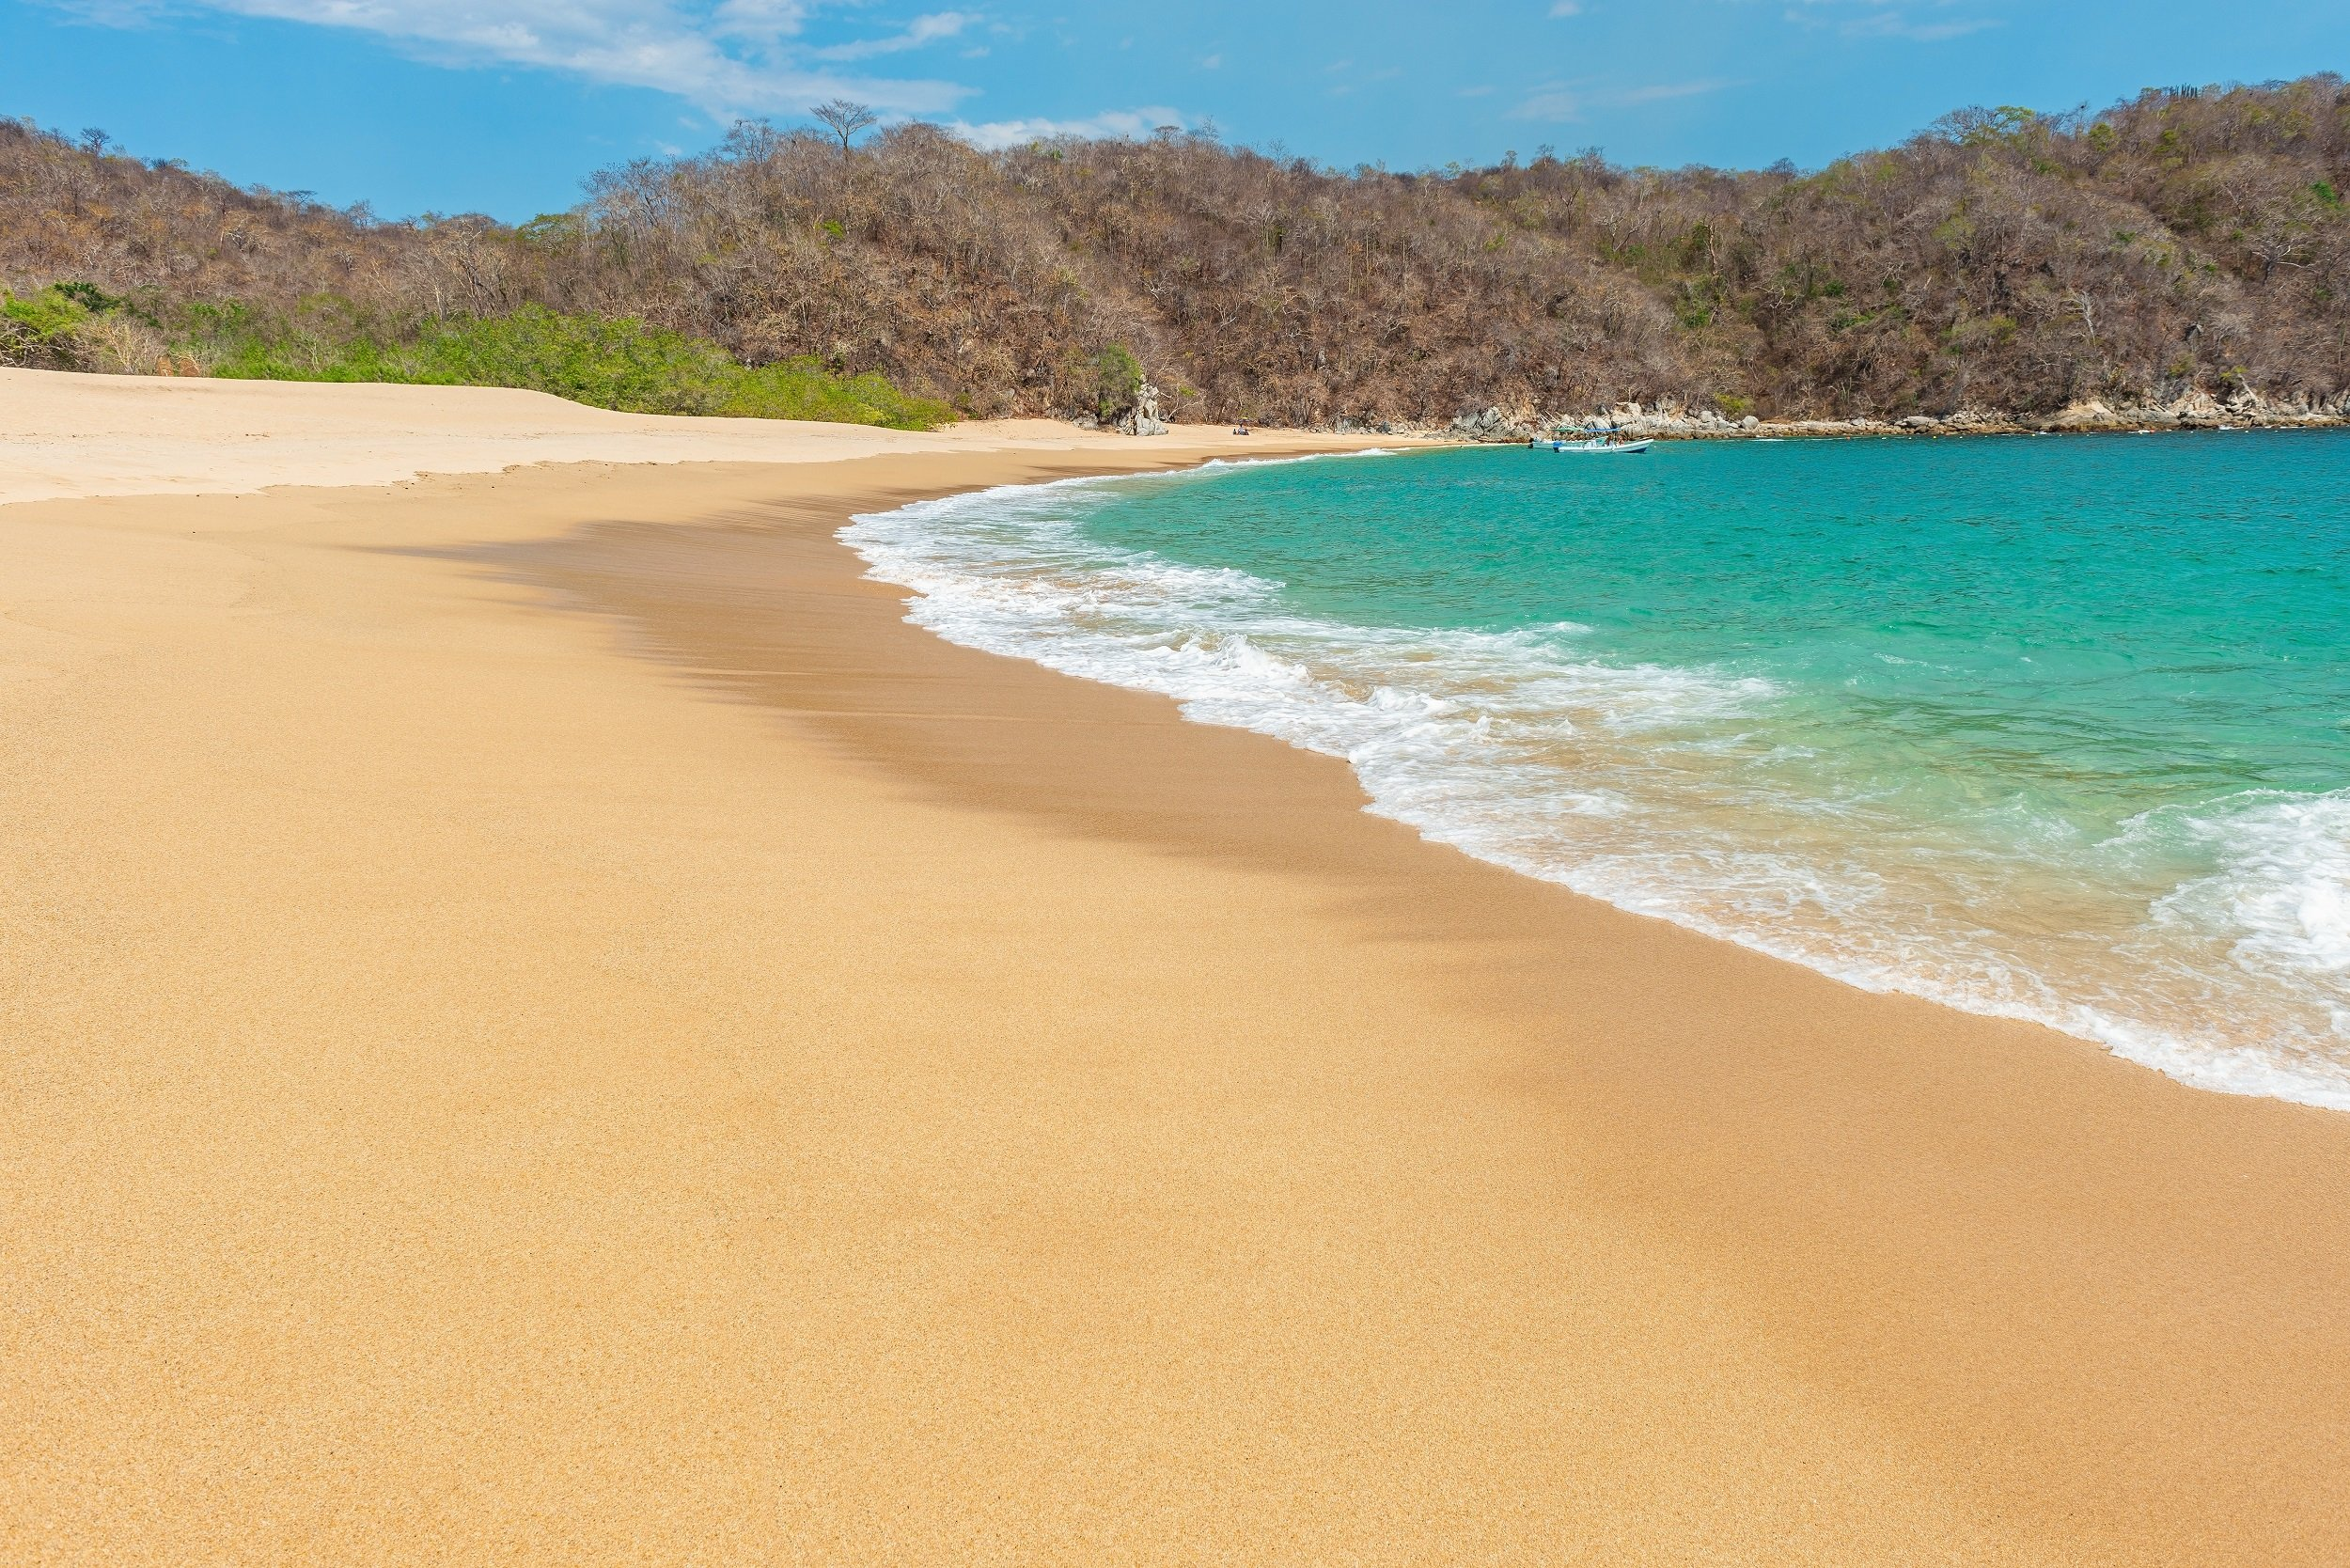 Swim In Beautiful Bays On Our Highlights Of Huatulco & Surrounding 6 Day Tour Package